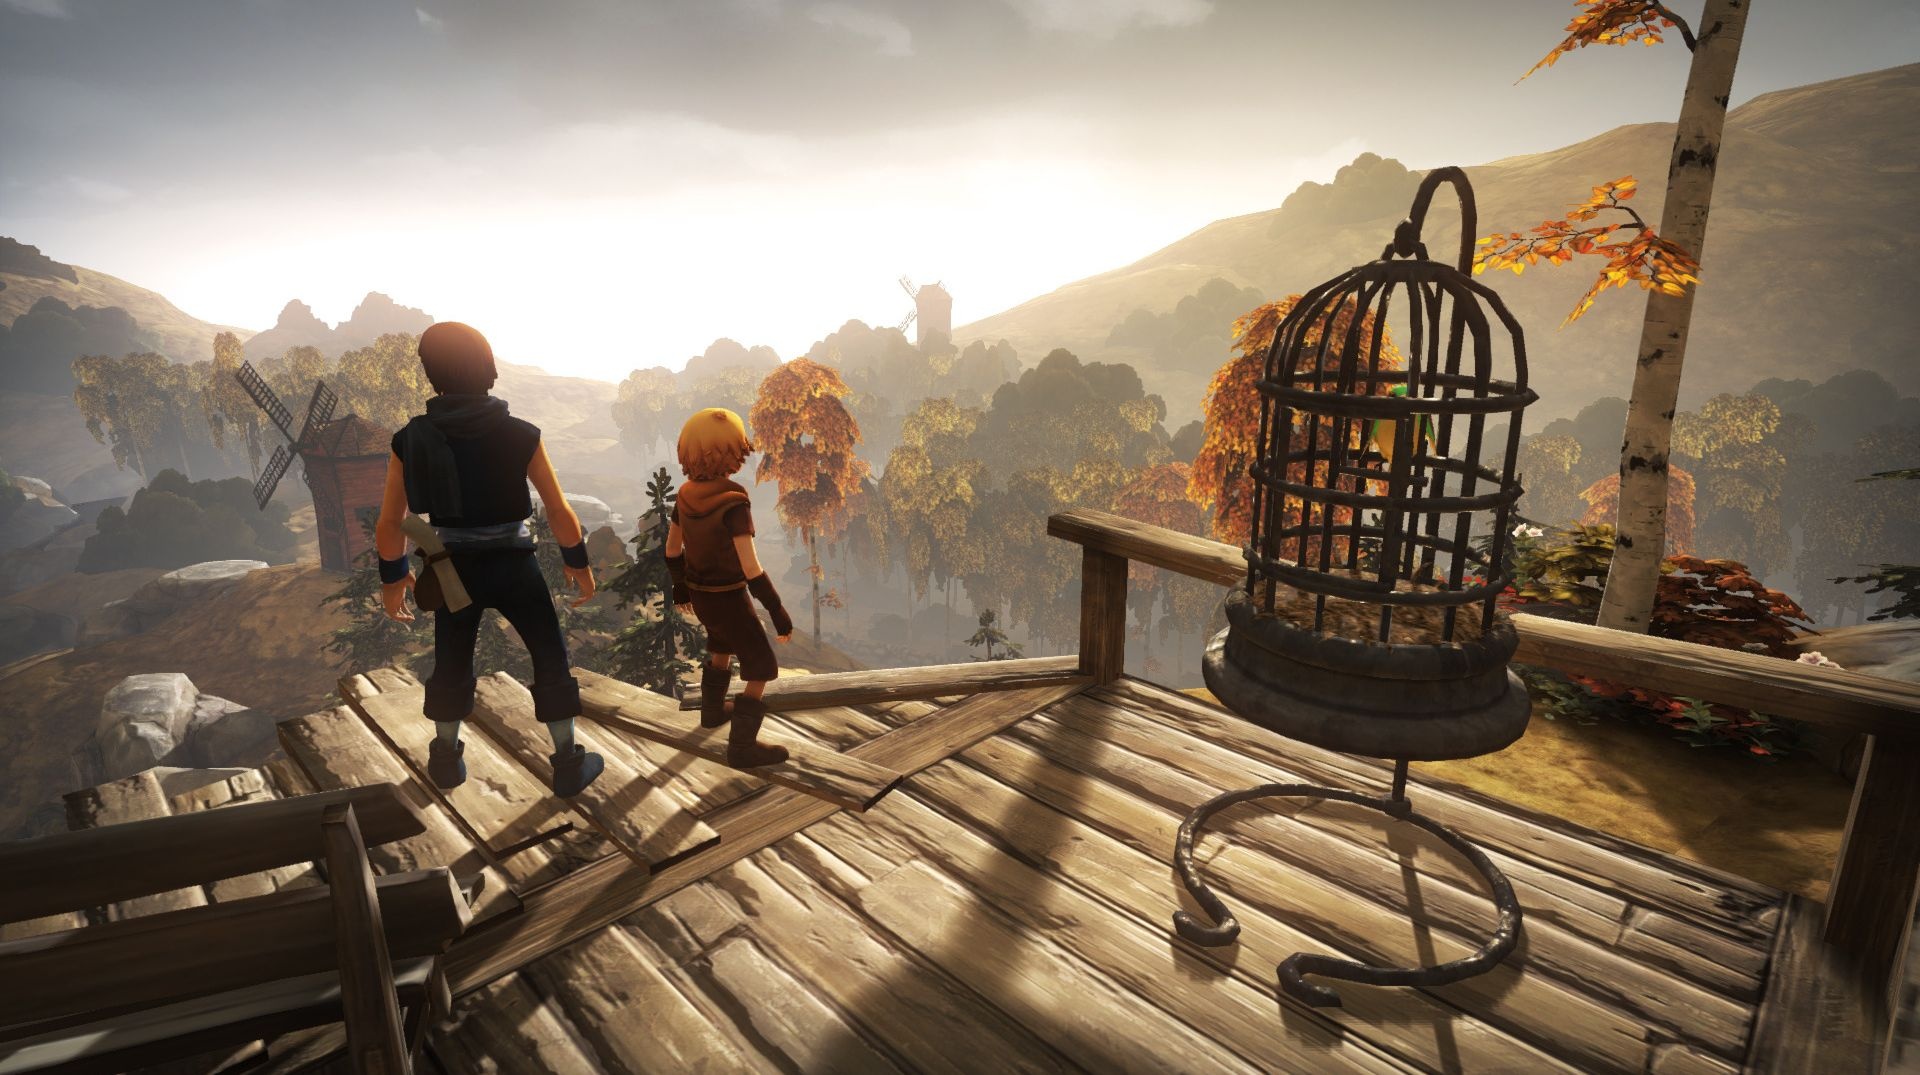 A screenshot of the two brothers in Brothers A Tale Of Two Sons, standing on a wooden platform and looking out on a valley.